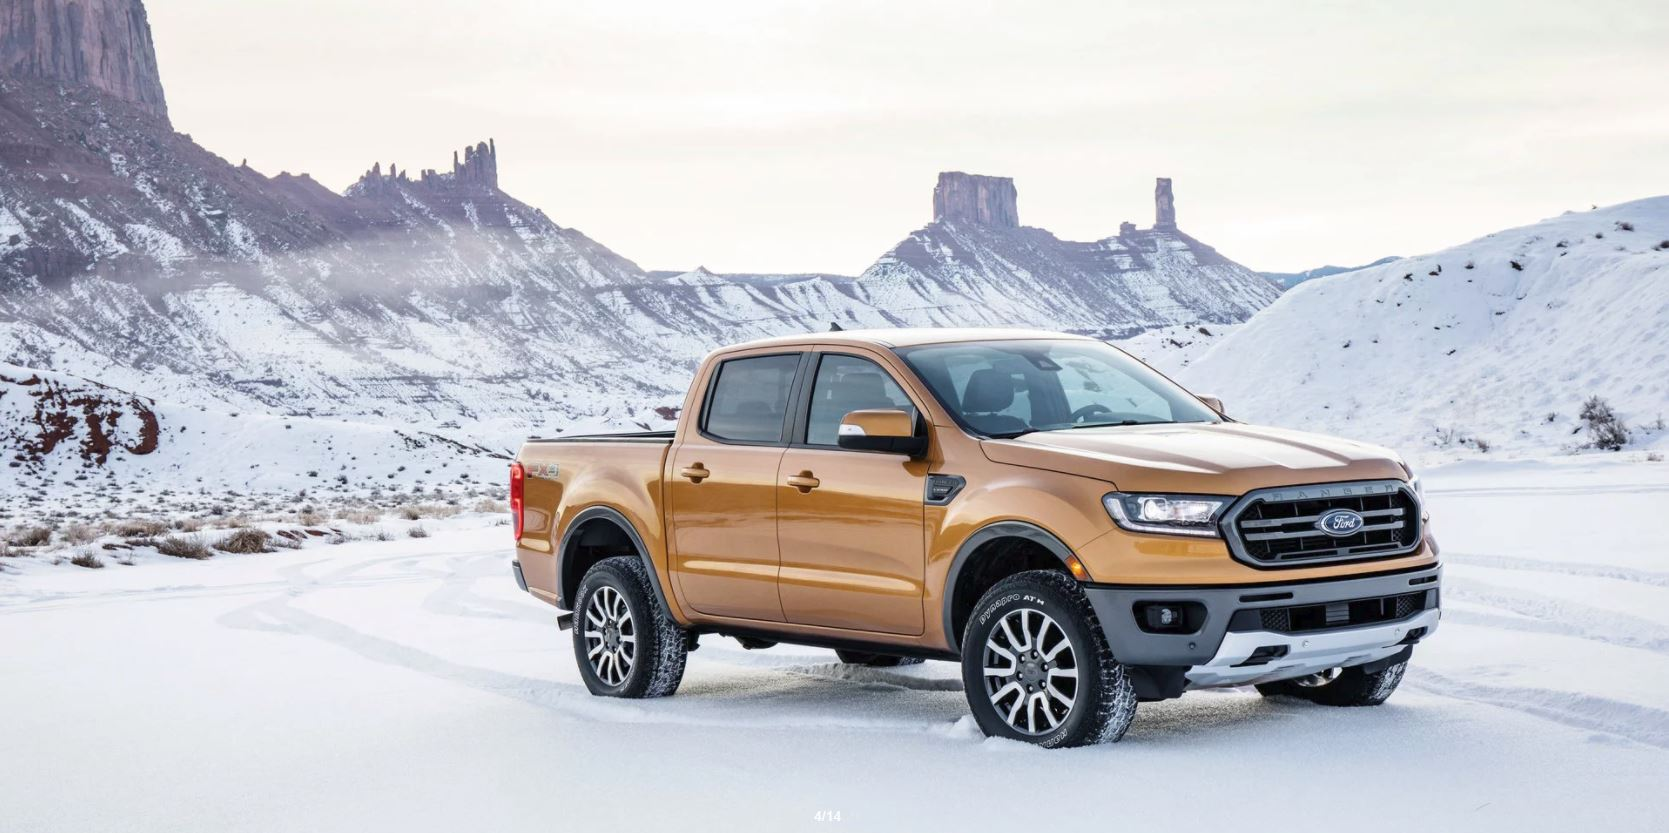 Pat Callinan S 4x4 Adventures The Essence Of 4x4 Adventure Revealed 2019 Ford Ranger